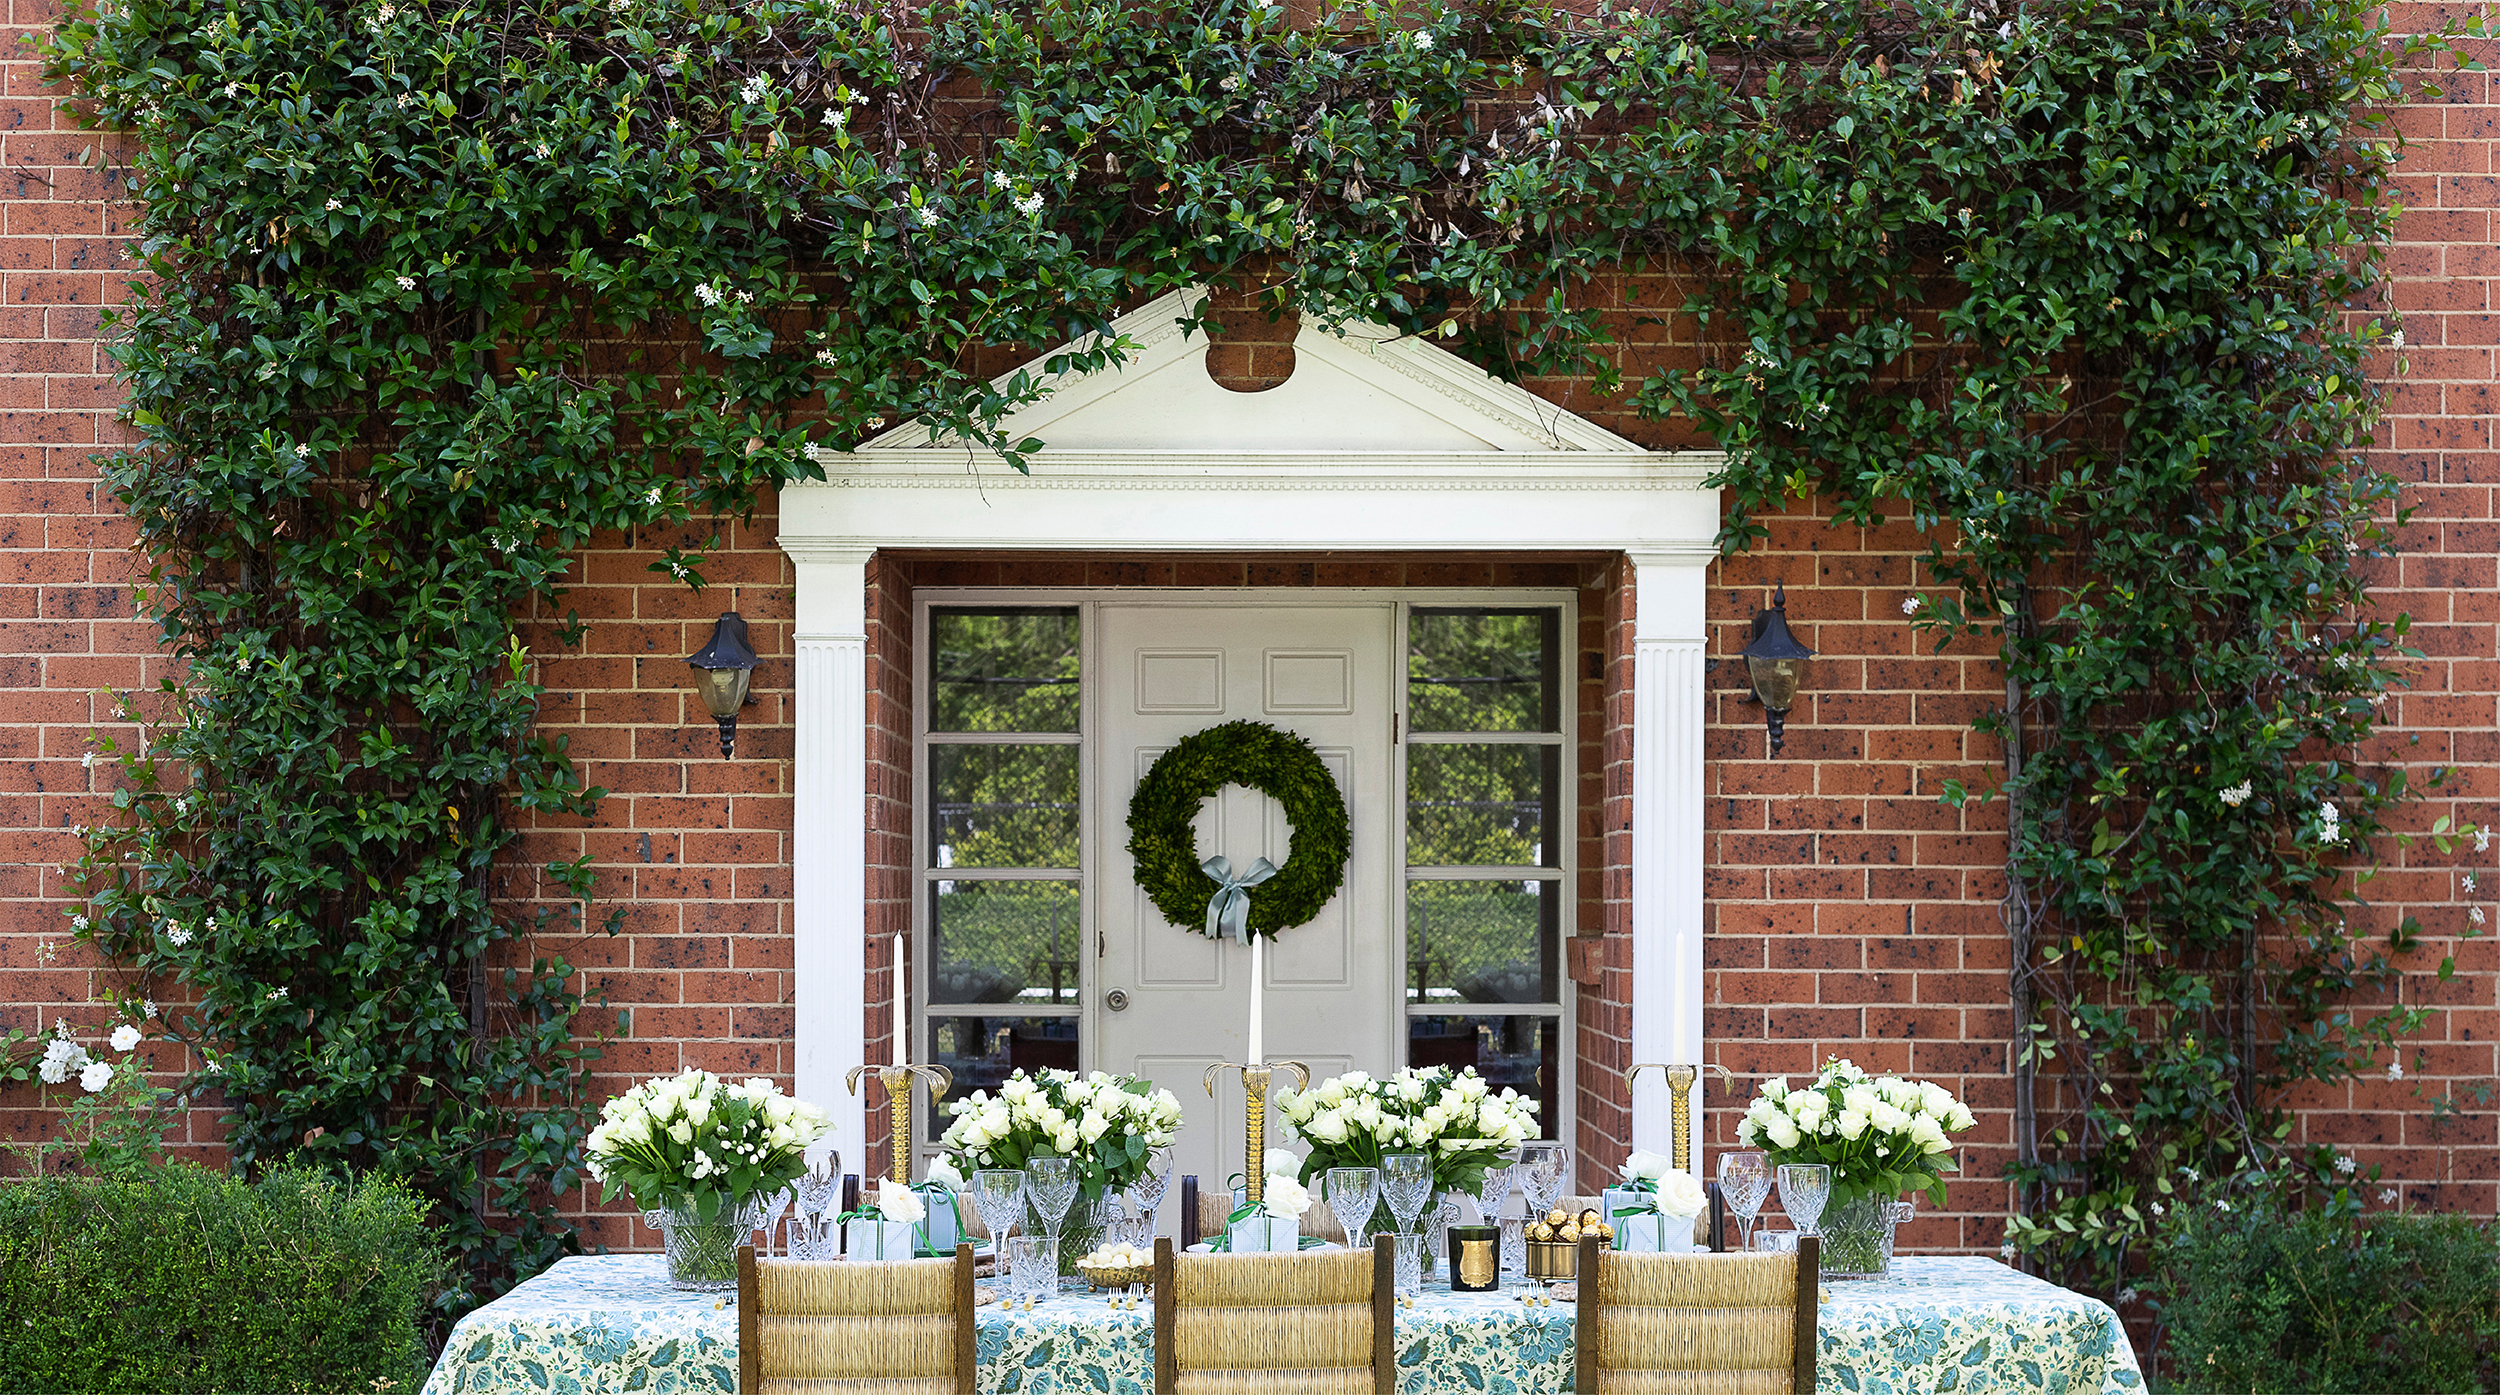 jasmine enveloping the facade and weathered wall sconces flanking the front door -